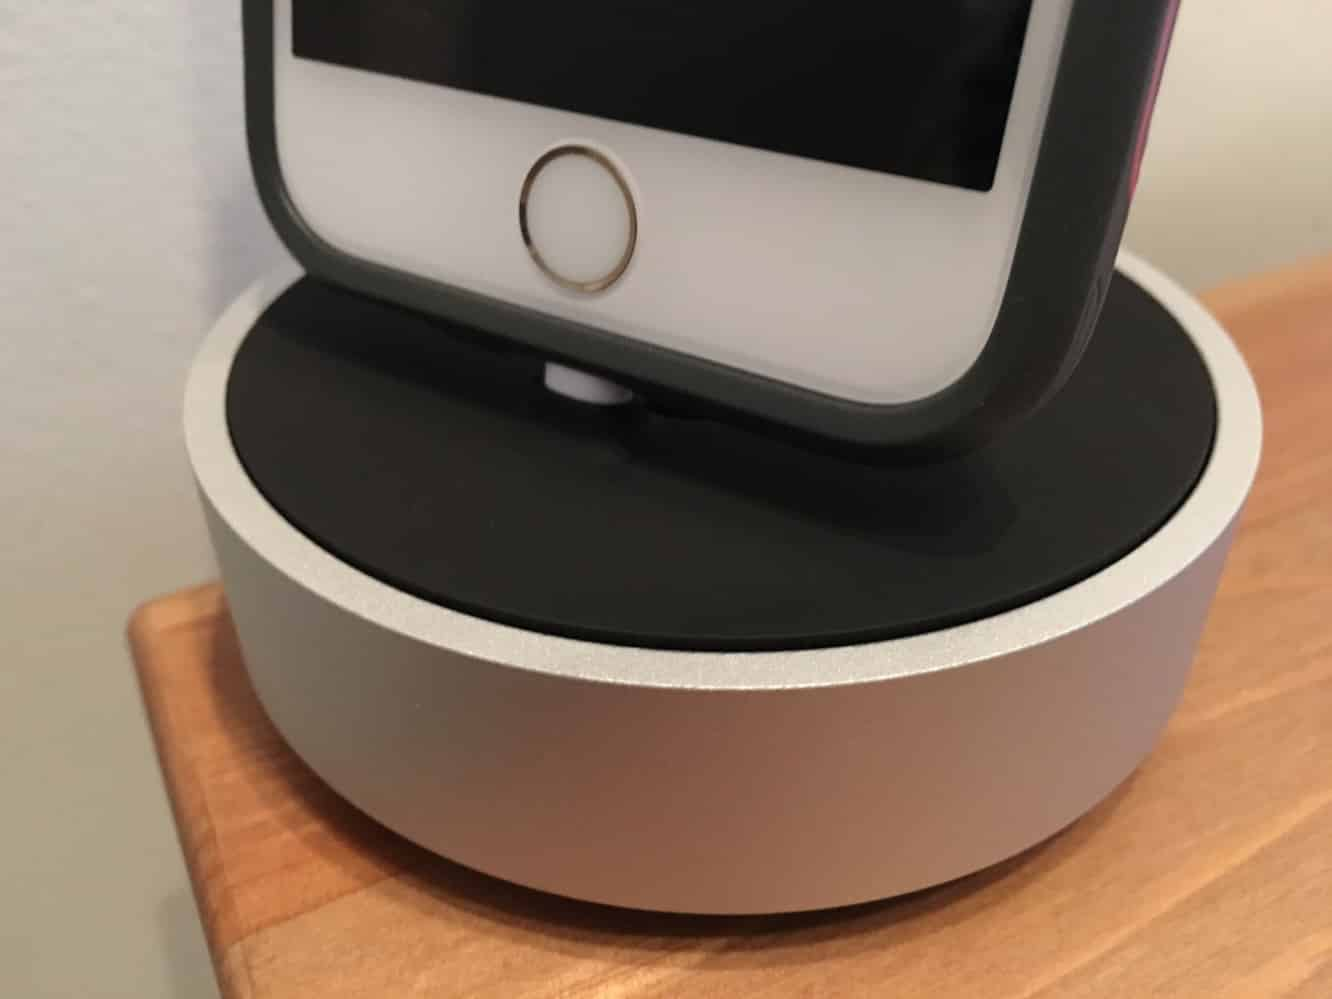 Review: Just Mobile HoverDock for Apple Watch + HoverDock for iPhone